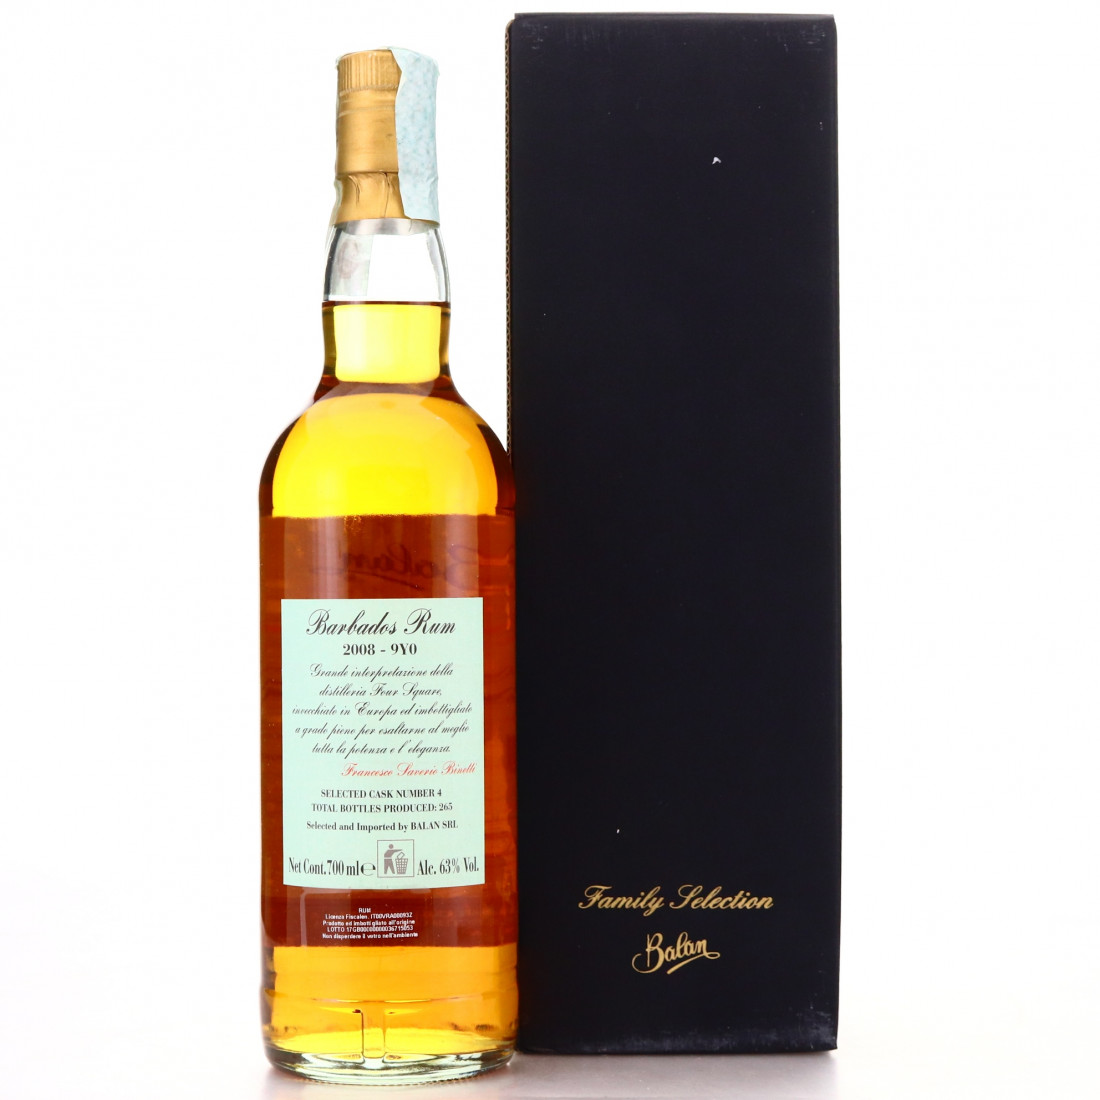 Foursquare 2008 Balan Family Selection 9 Year Old